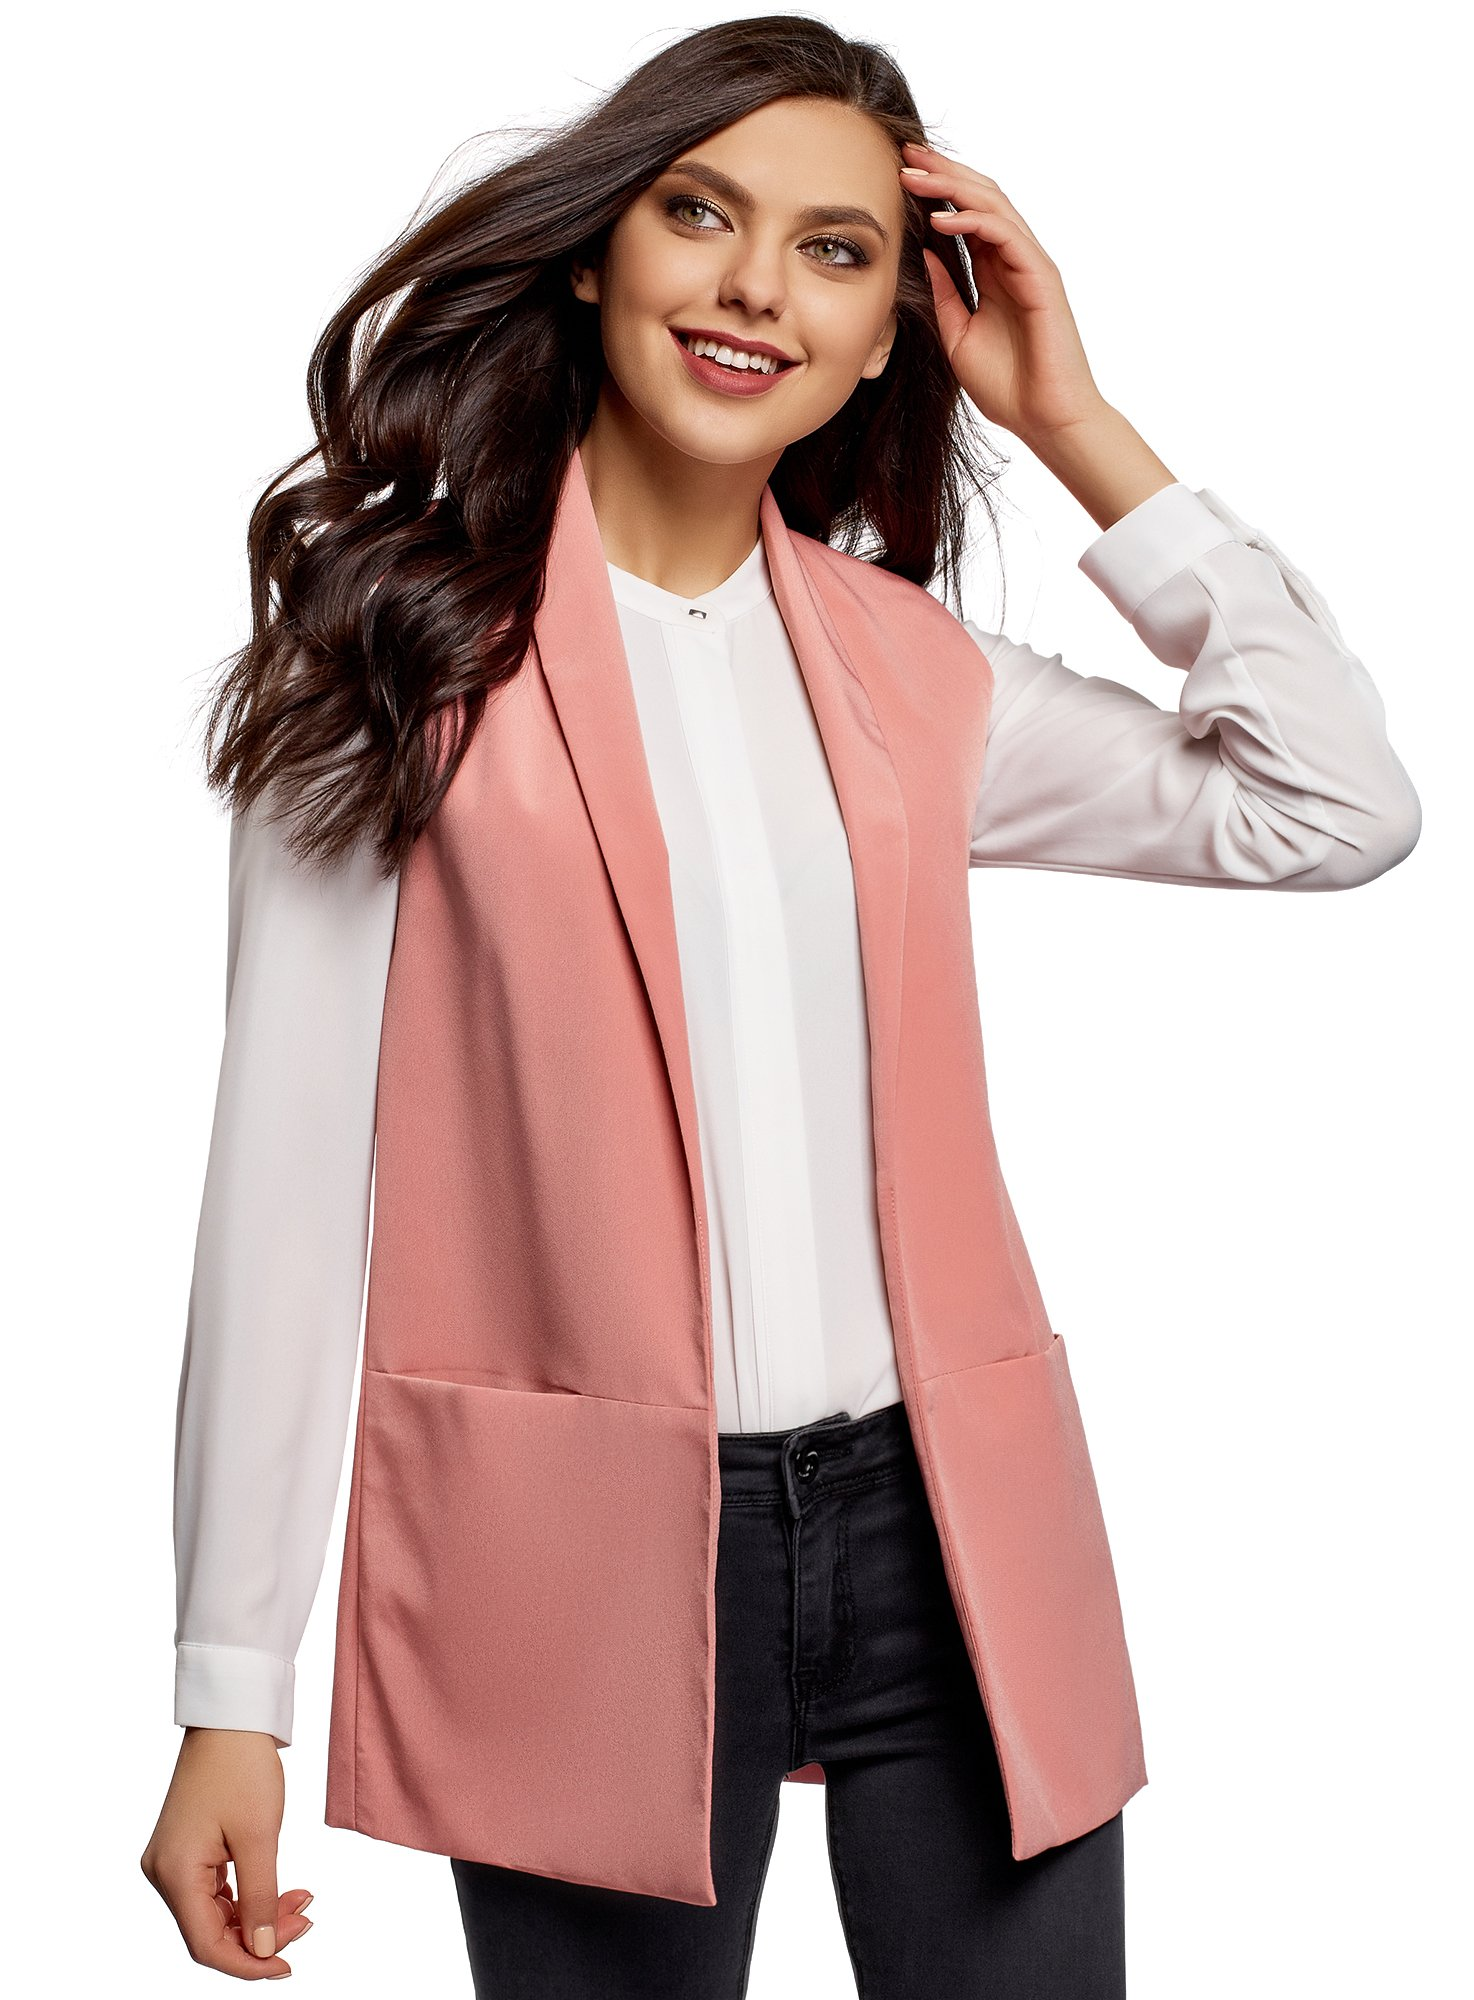 oodji Collection Women's Long No Closure Vest, Pink, US 4 / EU 38 / S